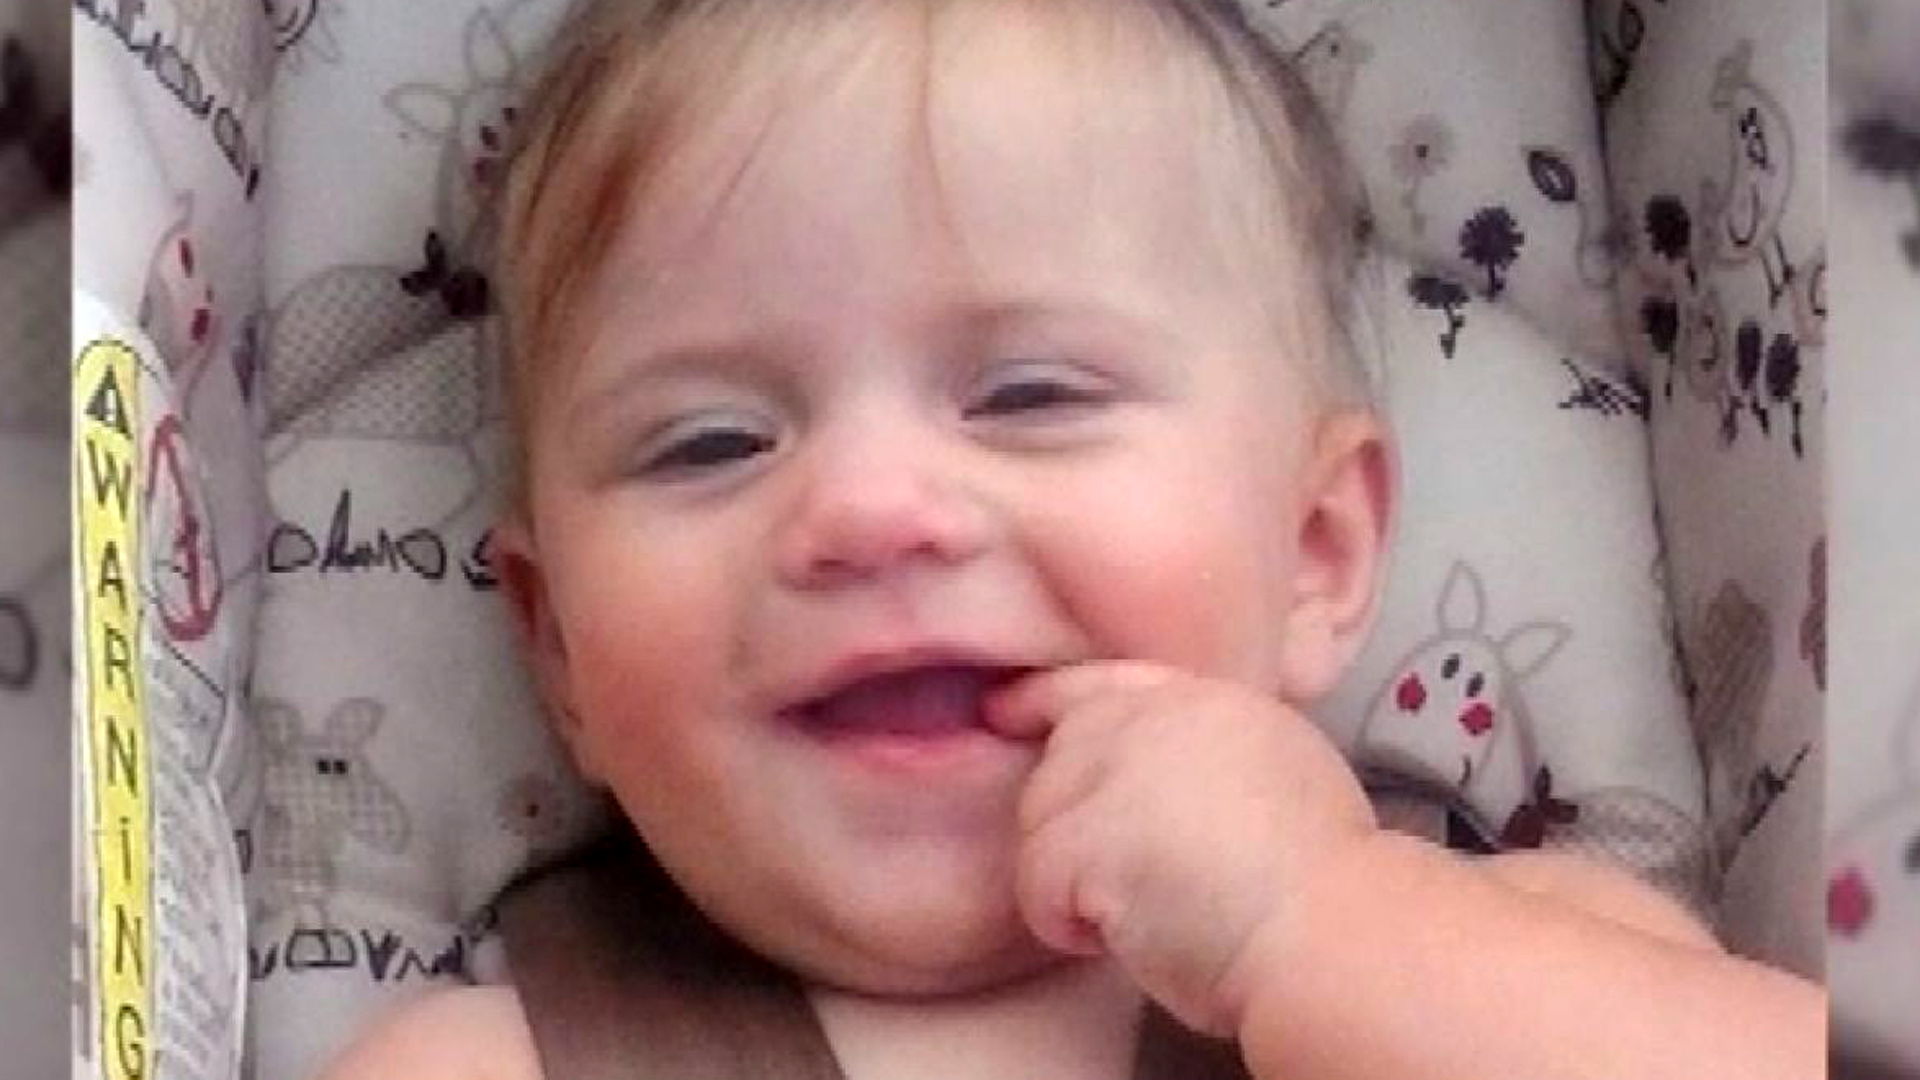 Iowa mom jailed for living with baby in garage